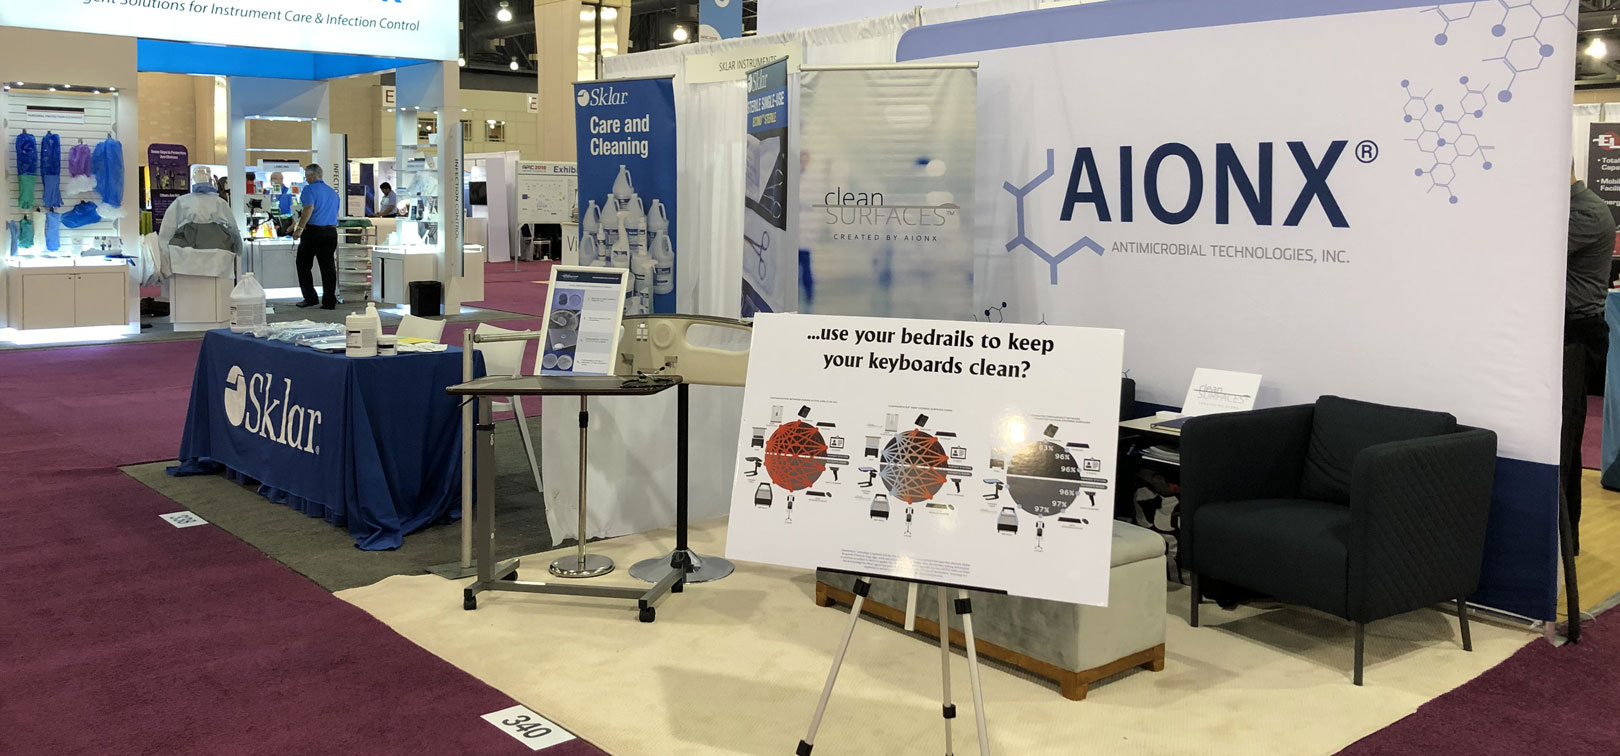 AIONX Sponsors APIC Annual Conference 2019, June 12-14